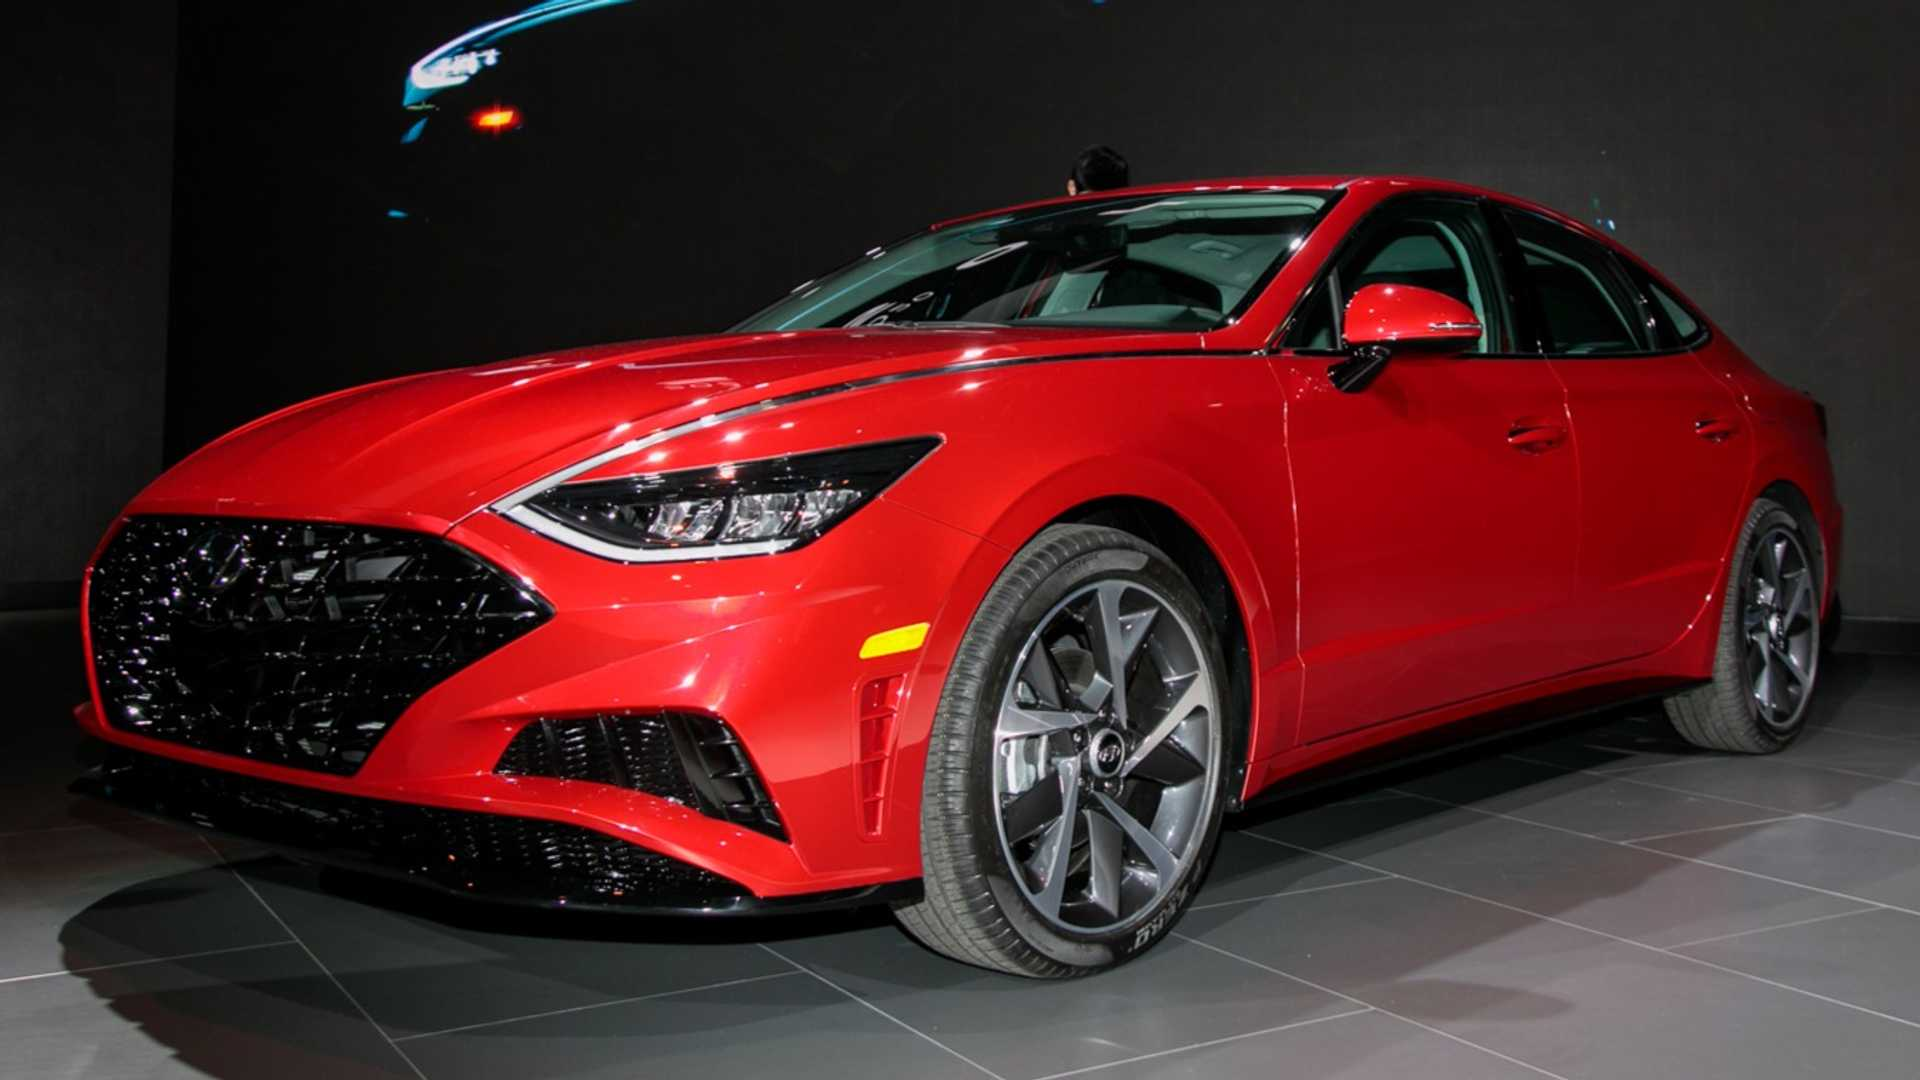 62 A 2020 Hyundai Sonata Engine Options Release Date